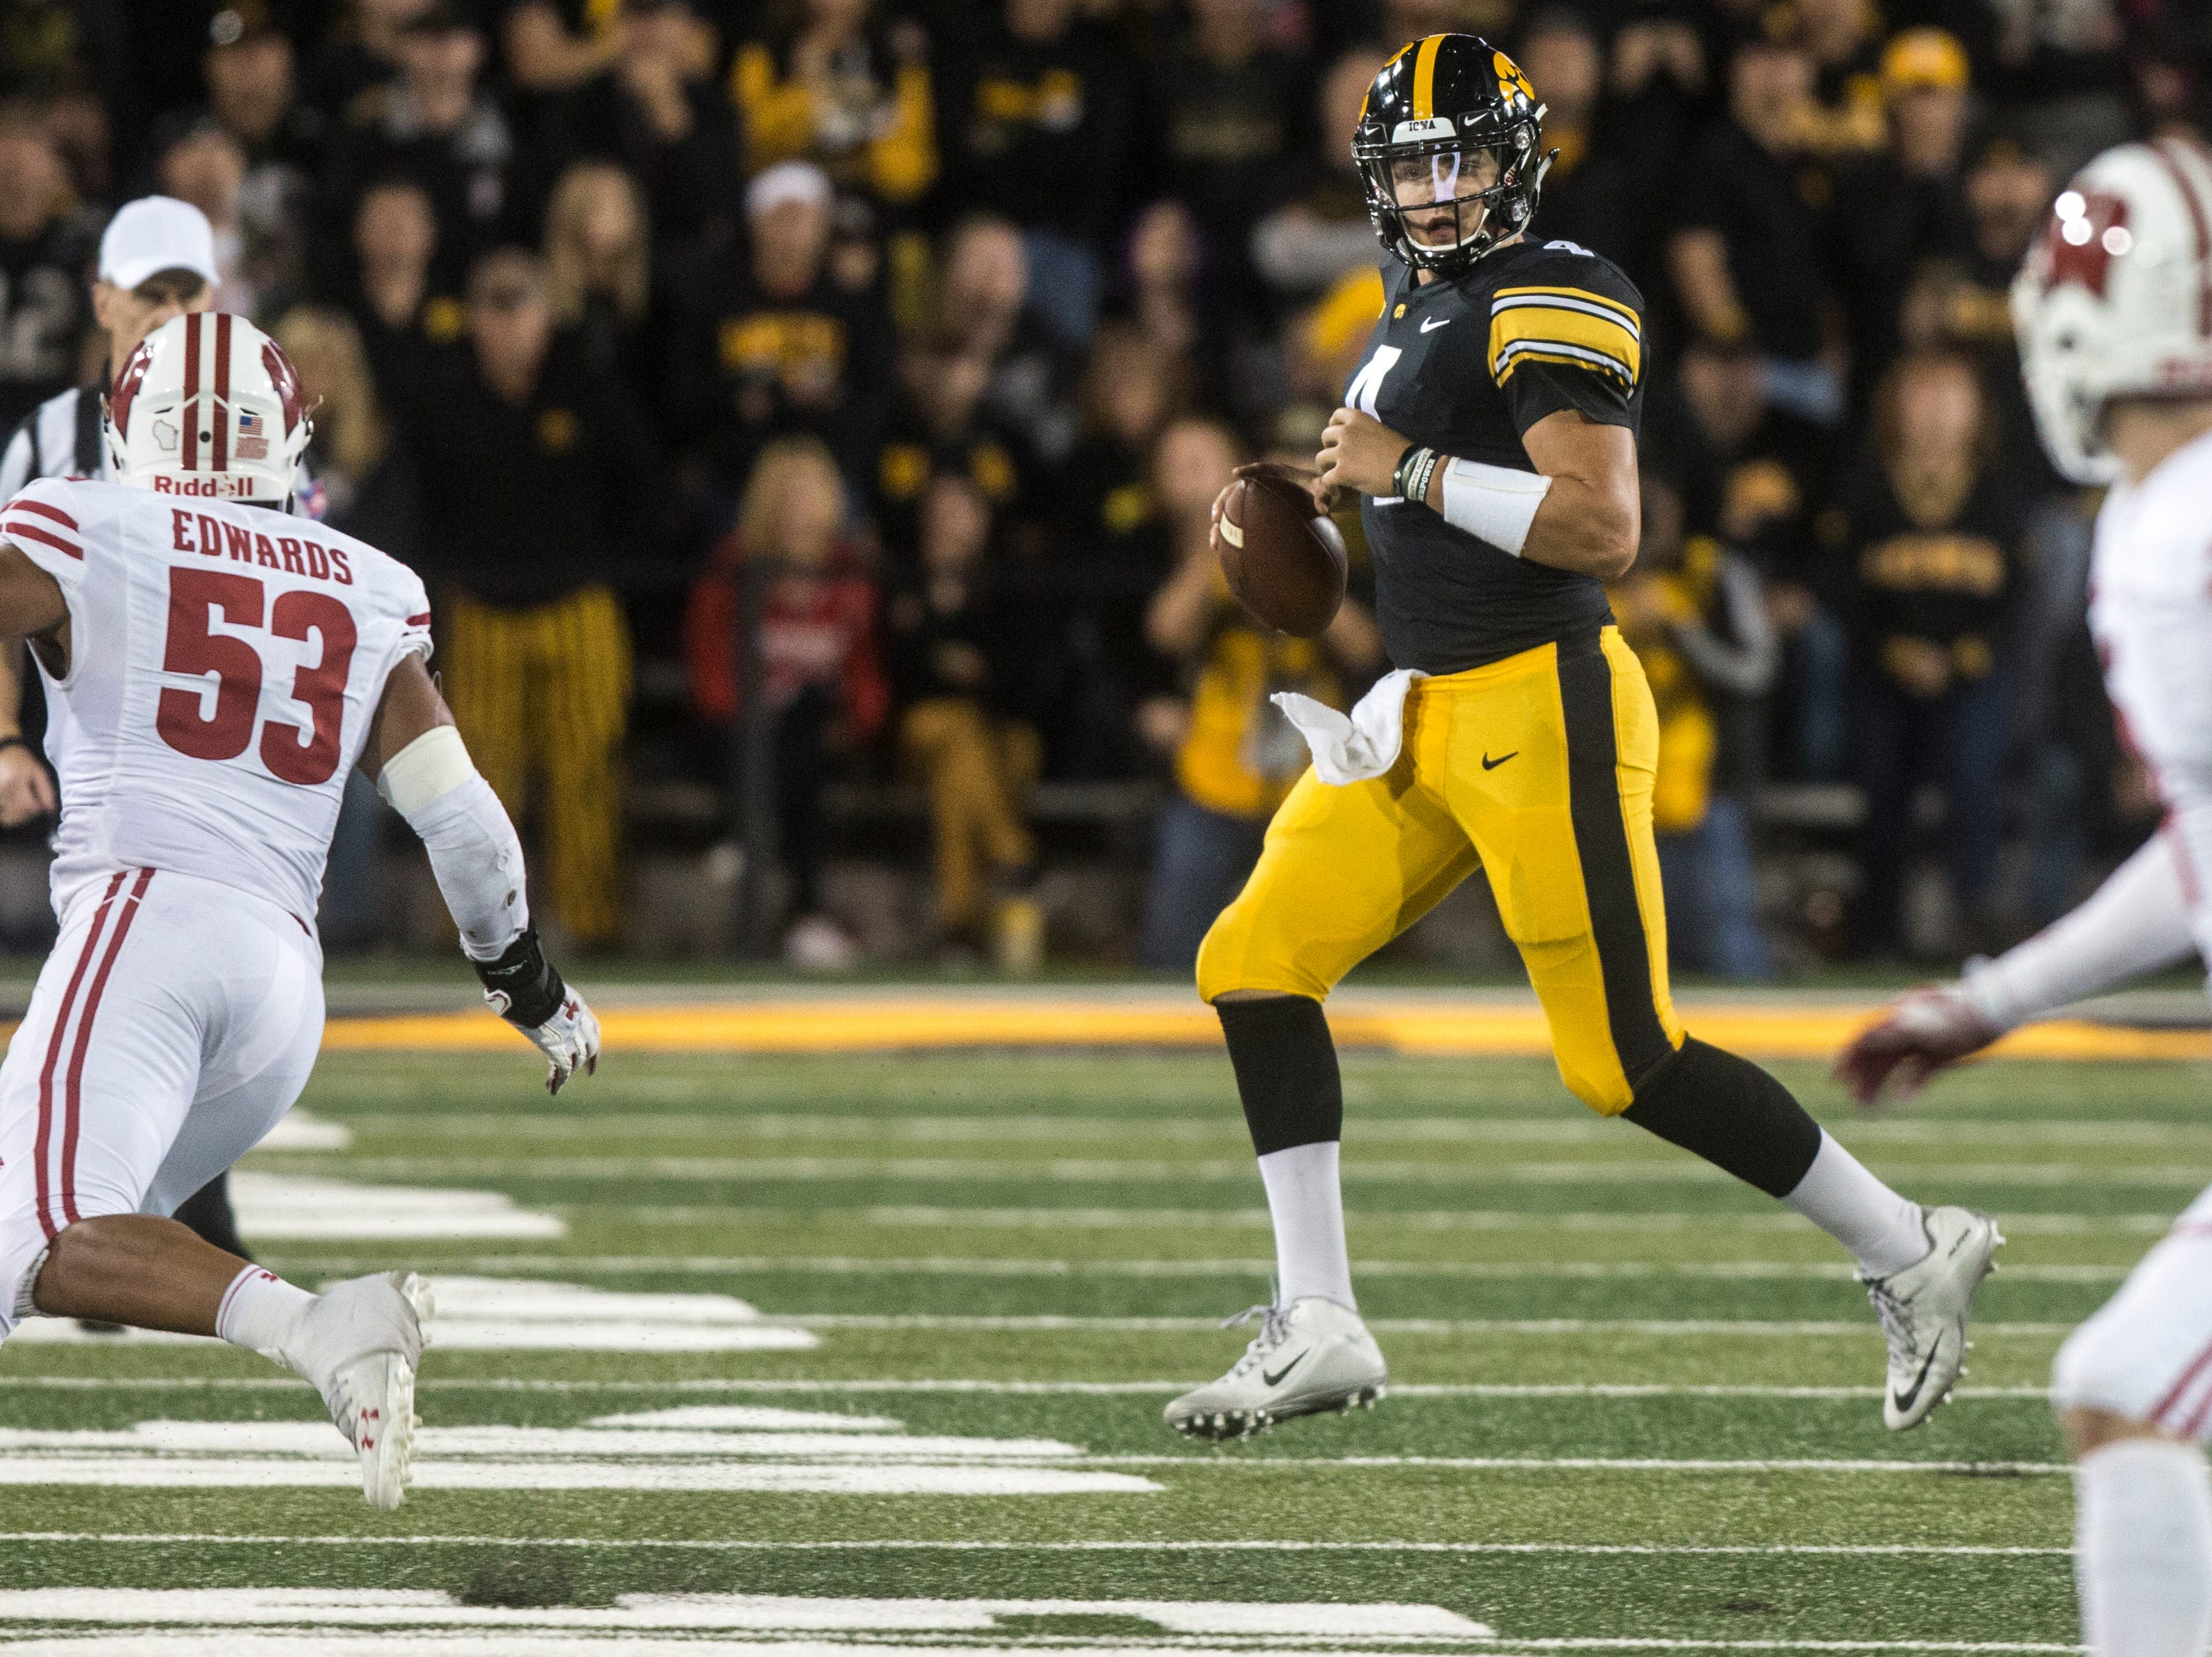 Iowa quarterback Nate Stanley (4) looks to pass while Wisconsin defenders close in during an NCAA football game on Saturday, Sept. 22, 2018, at Kinnick Stadium in Iowa City.